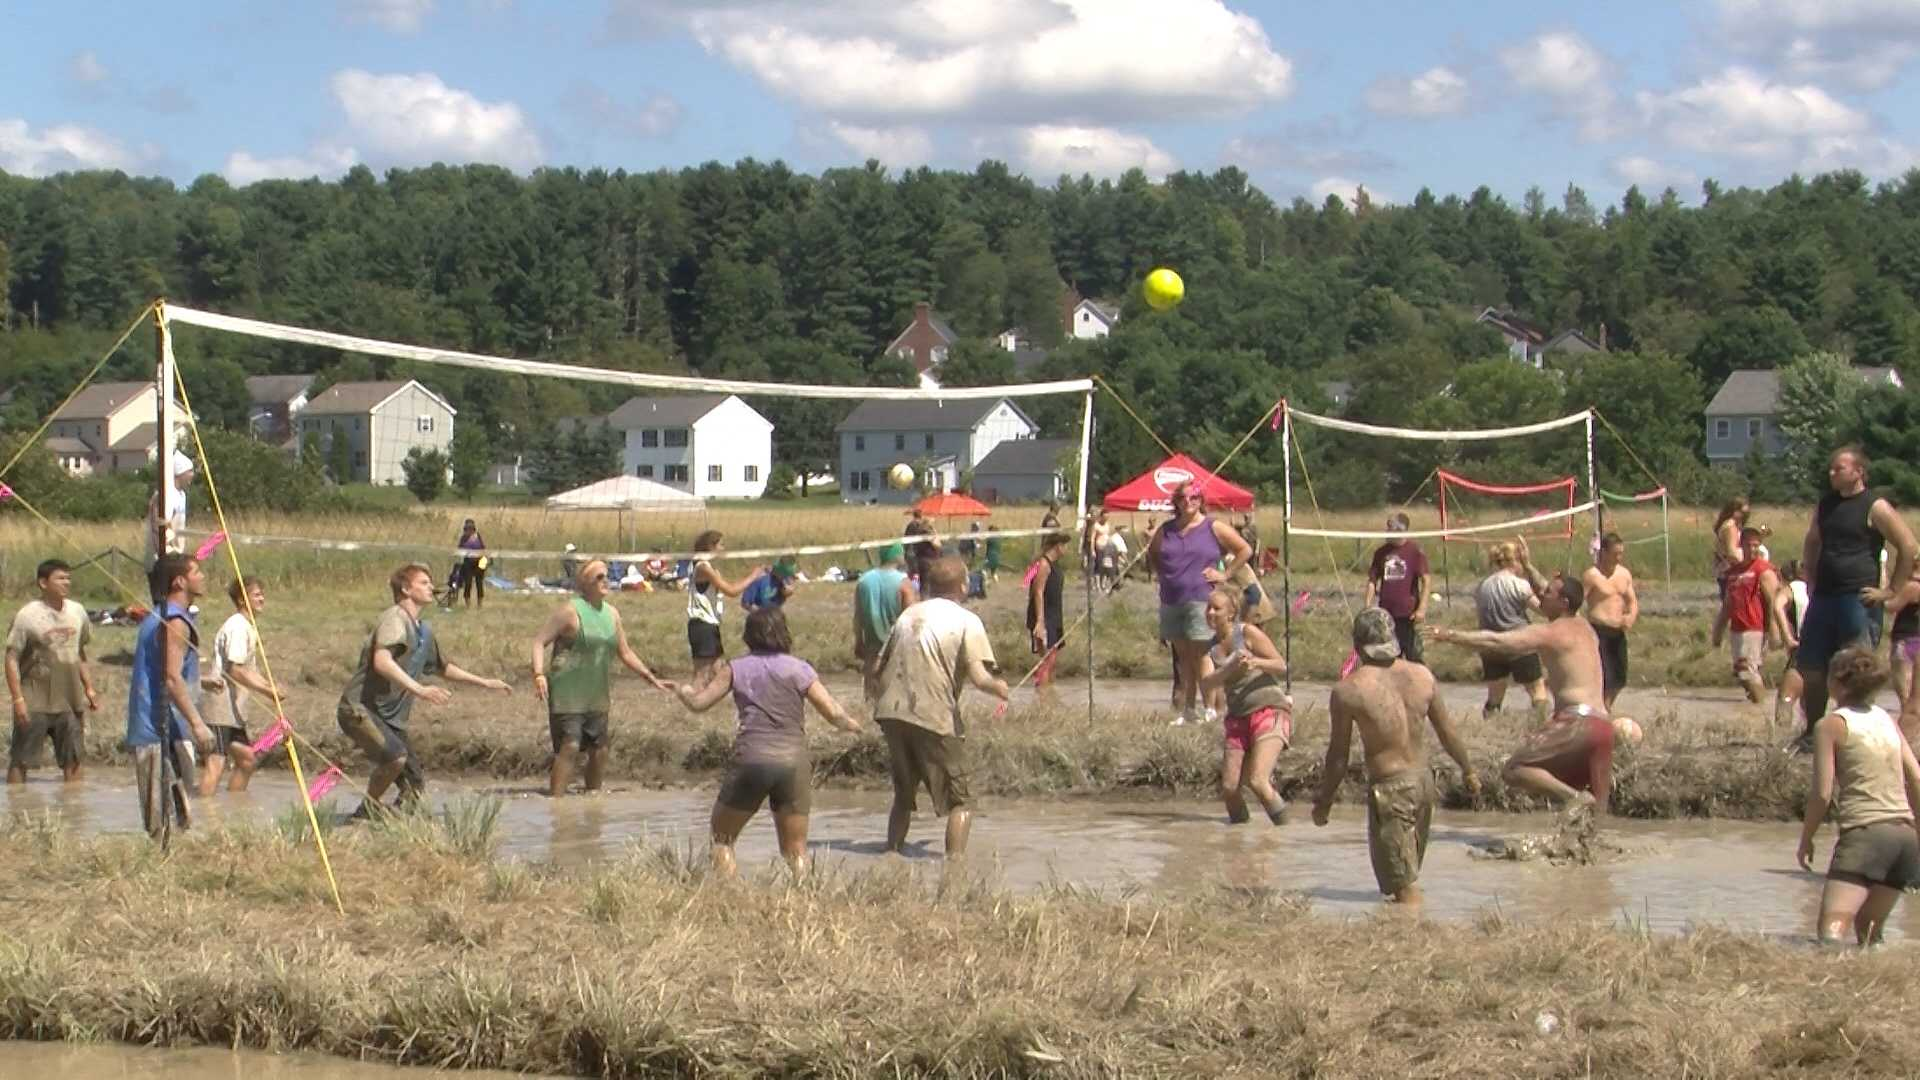 Leaders with the Epilepsy Foundation of Vermont said they hoped to raise about $20,000 between two mud volleyball events.